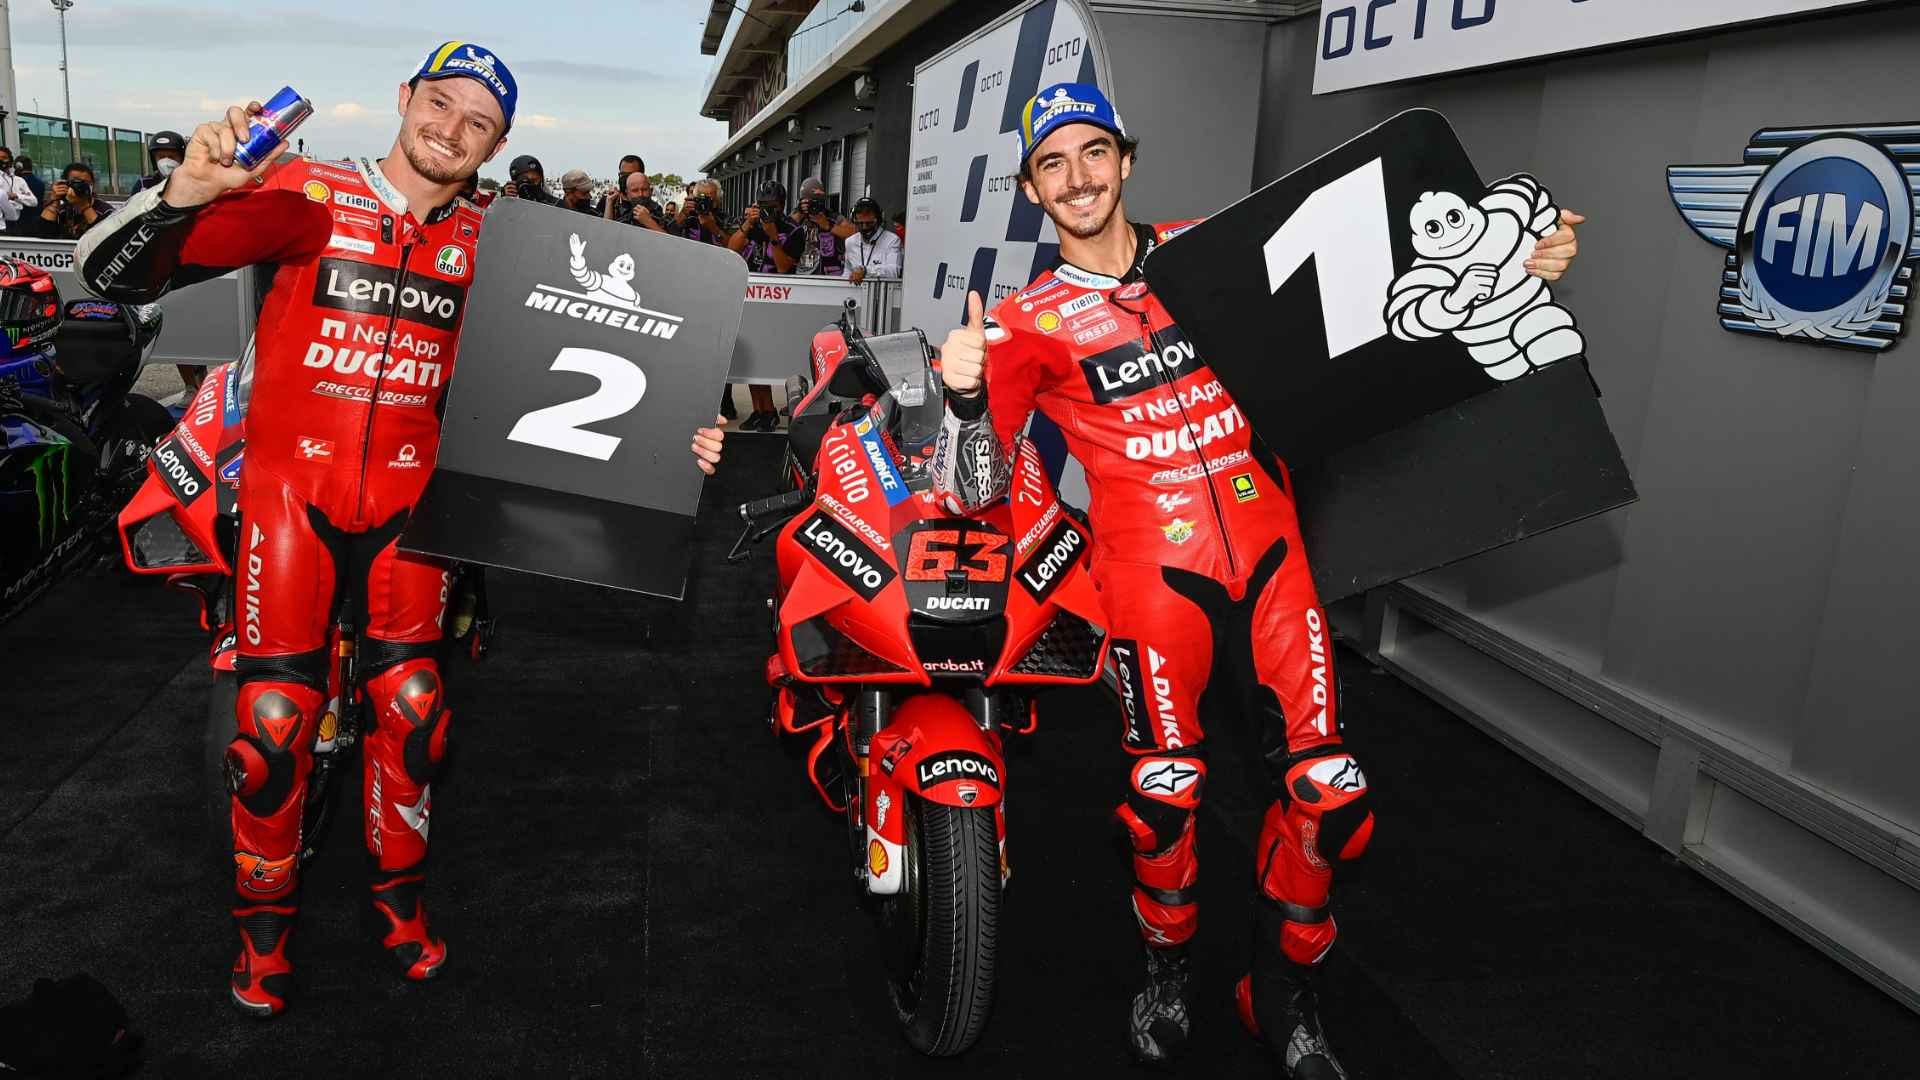 San Marino GP. It's another Ducati one-two in qualifying with Bagnaia on pole and Miller second at Misano World Circuit Marco Simoncelli.